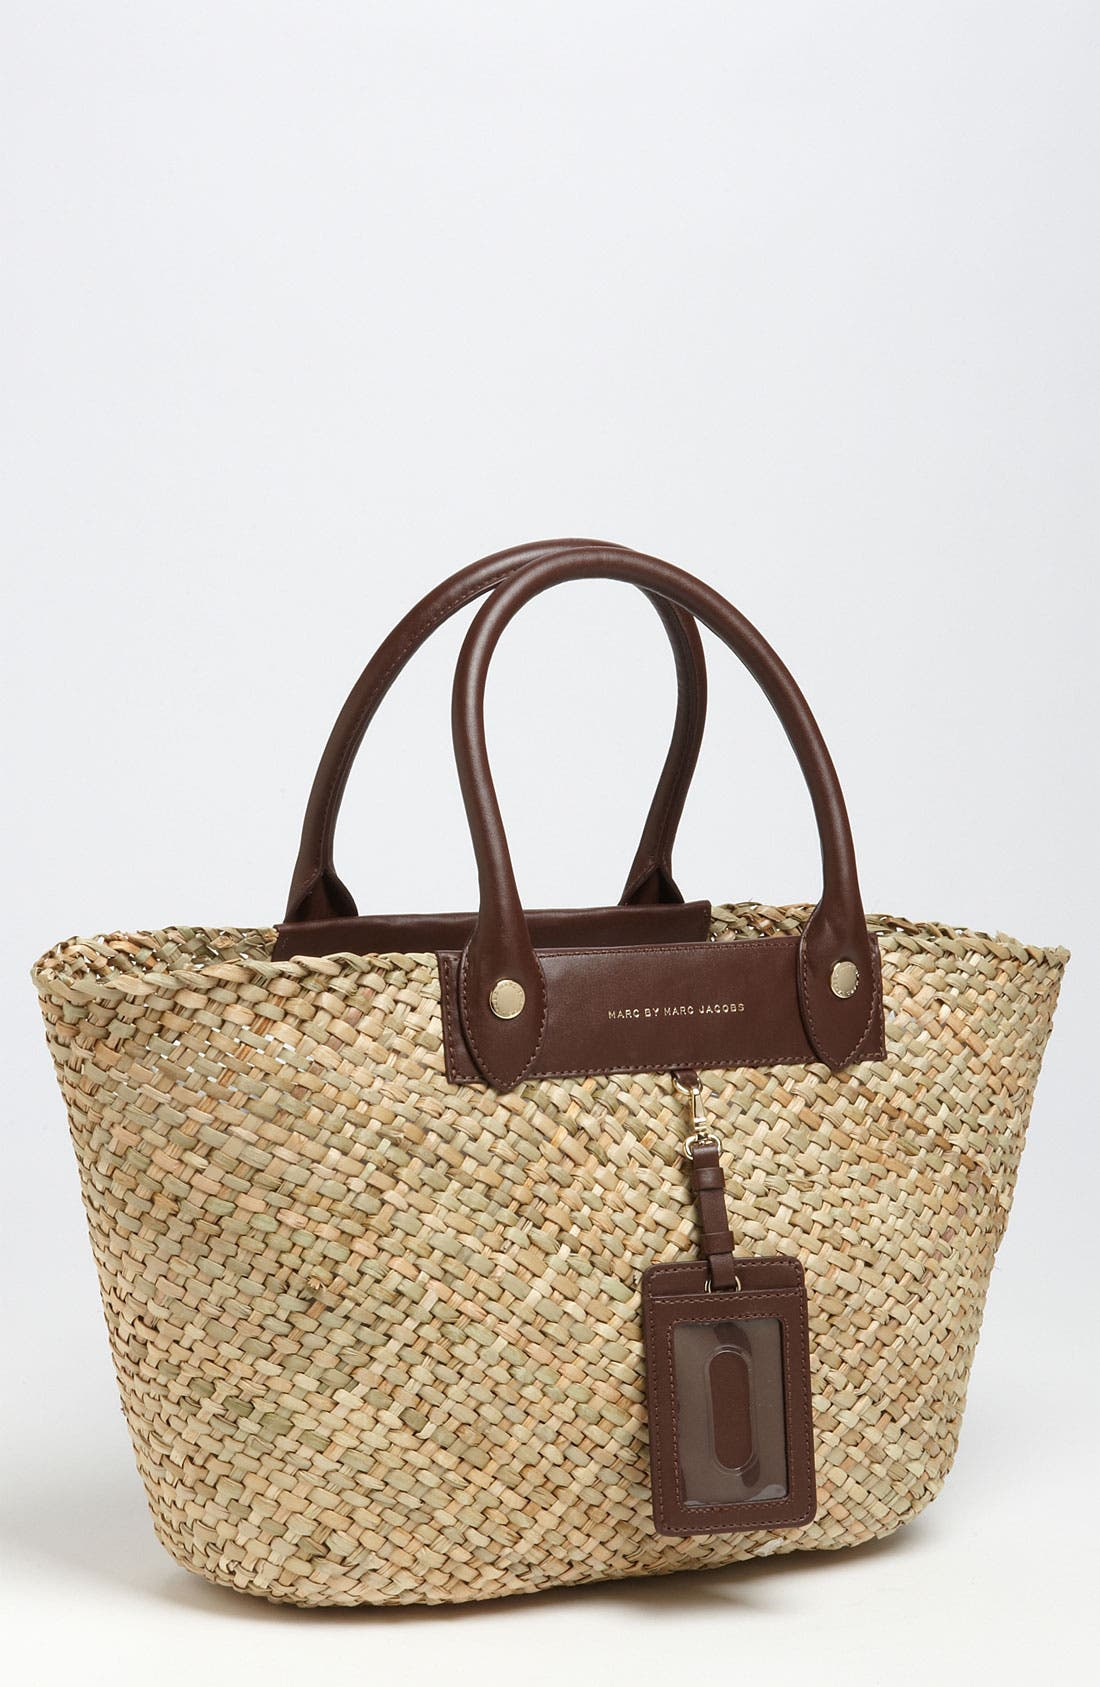 MARC BY MARC JACOBS 'Preppy' Straw Tote, Main, color, 247